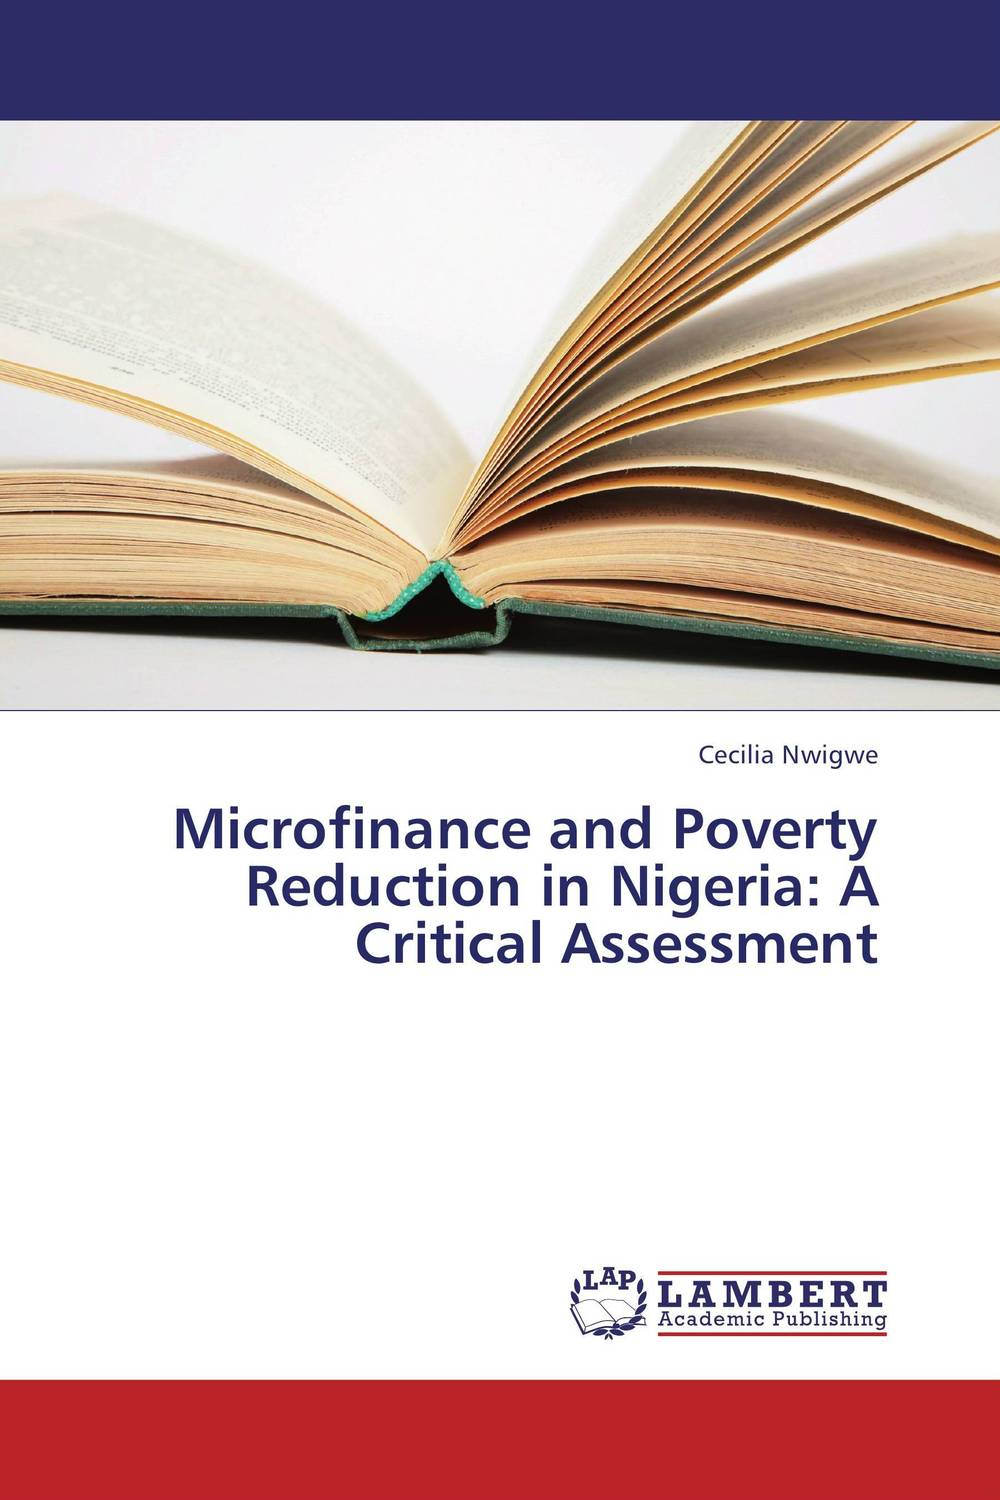 Microfinance and Poverty Reduction in Nigeria: A Critical Assessment